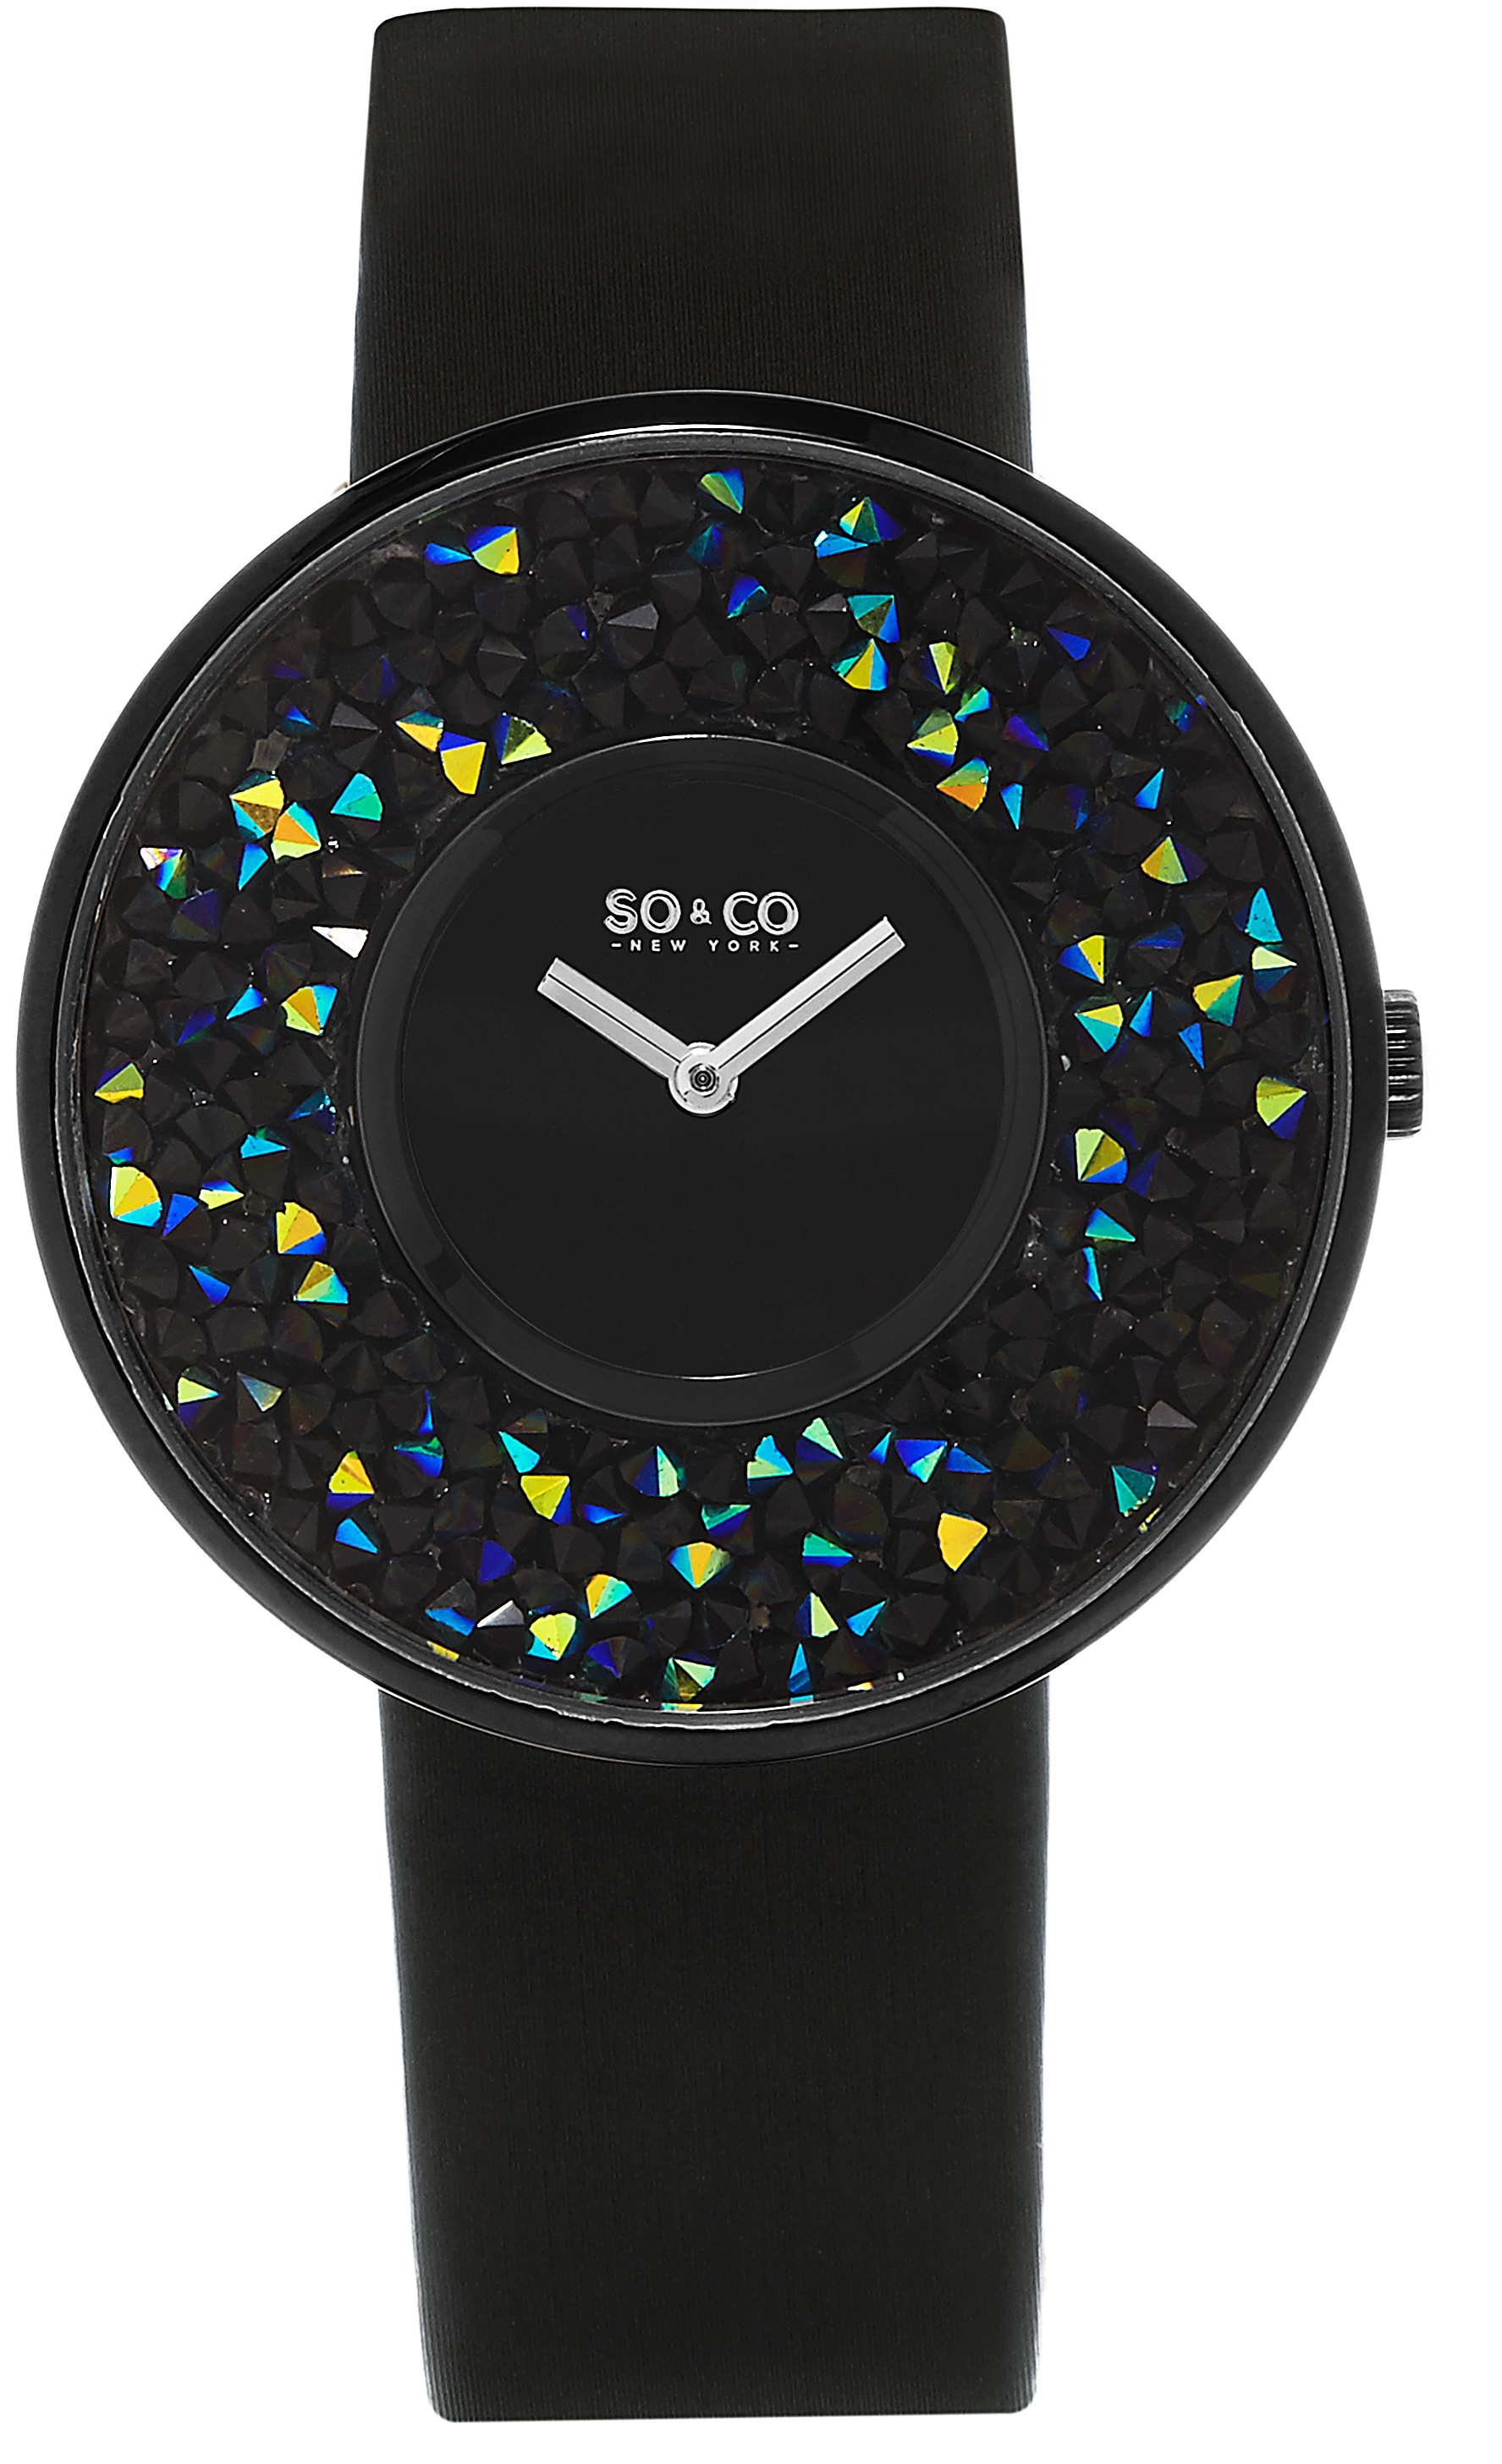 So & Co New York SoHo Dameklokke 5223.4 Sort/Sateng Ø40 mm - So & Co New York